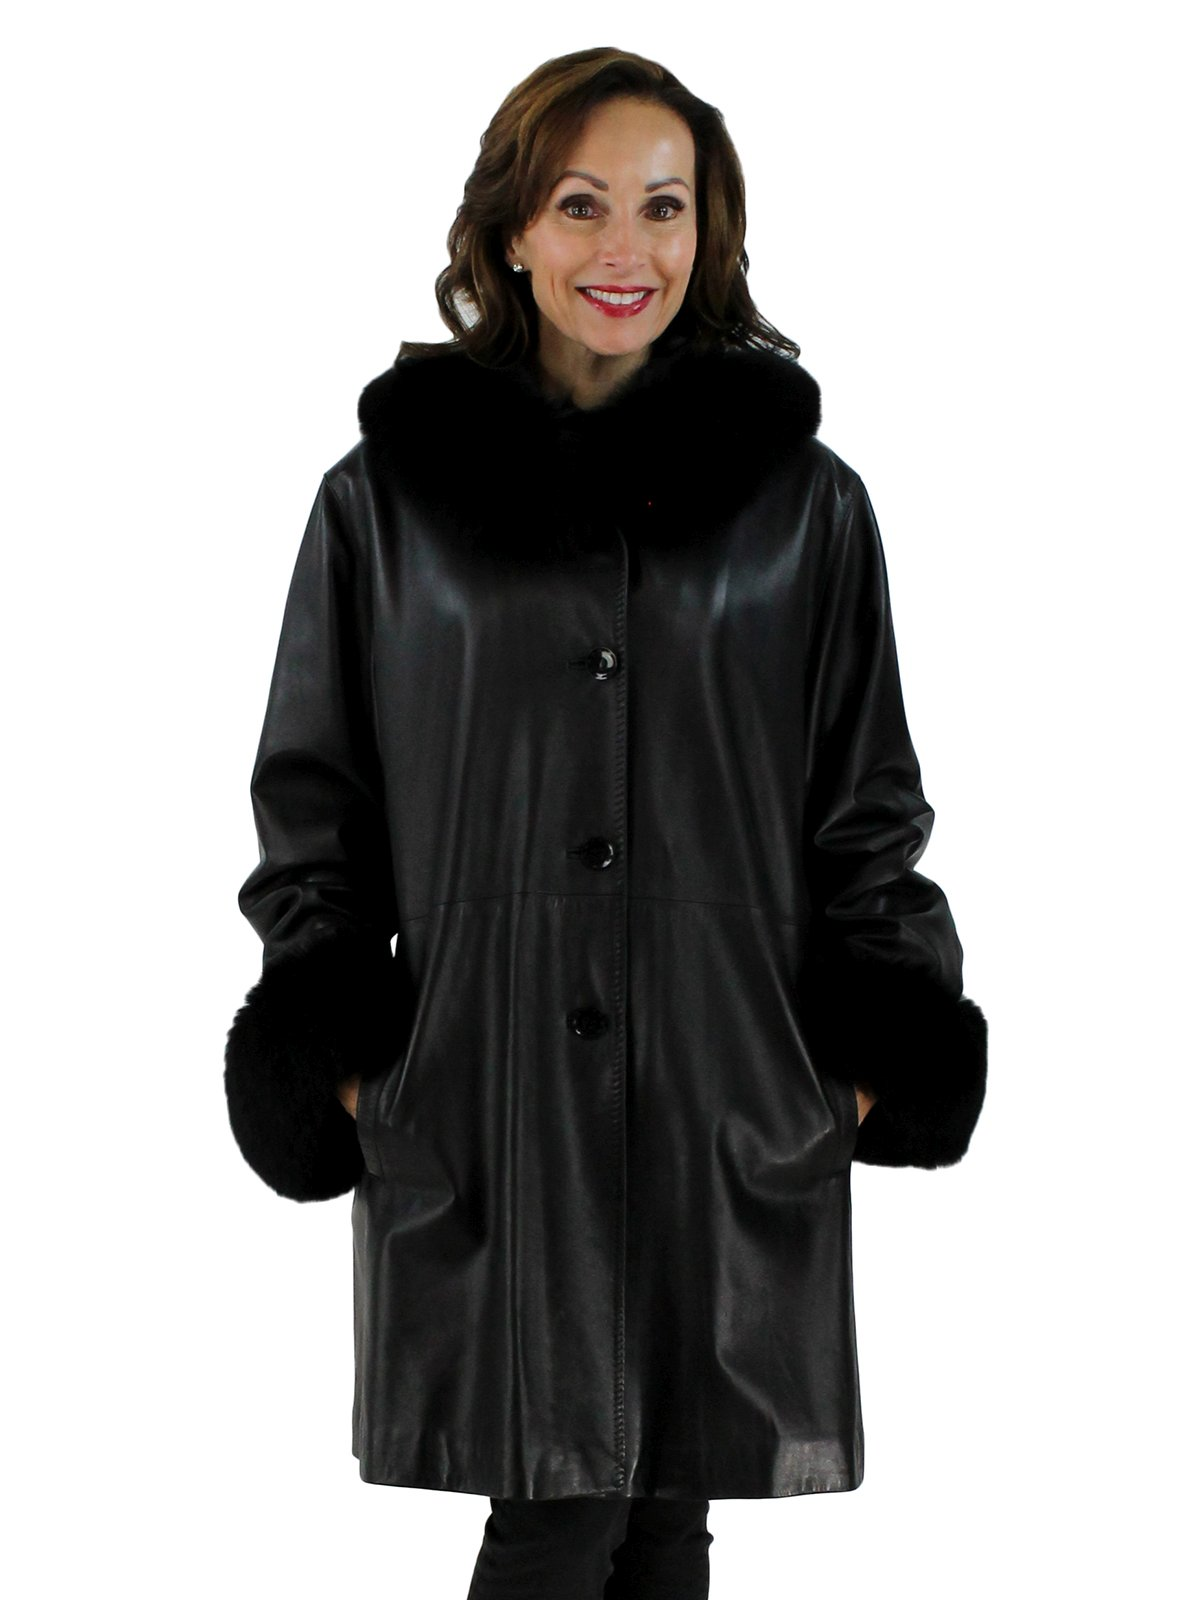 Woman's Black Leather Stroller with Fox Fur Trimmed Hood